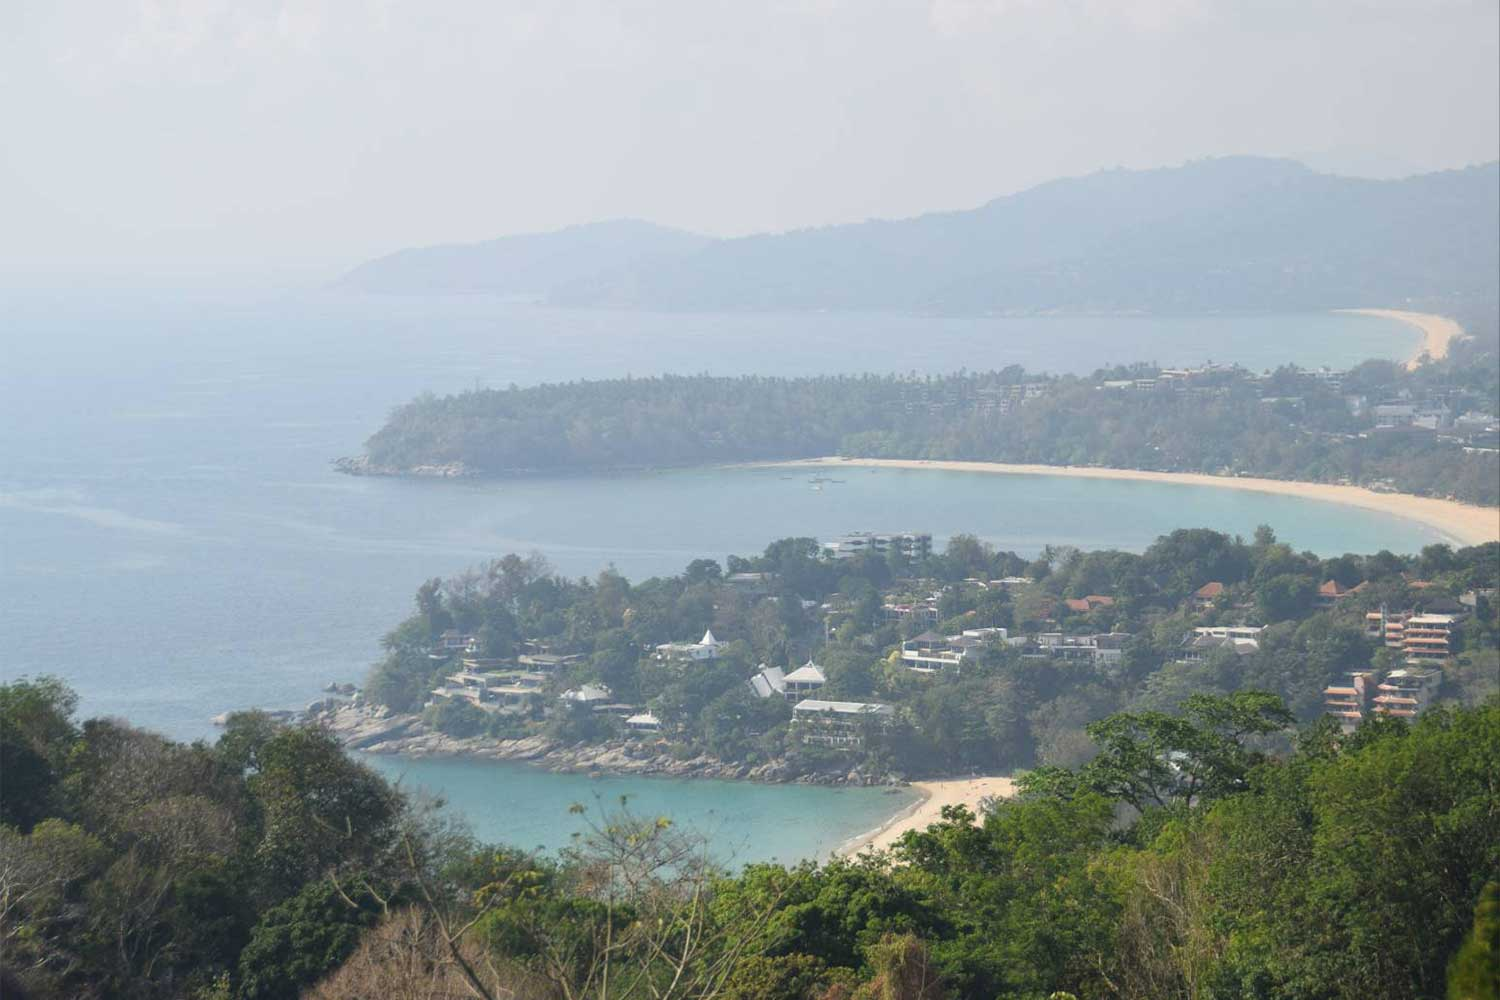 The vista from Karon Viewpoint, a popular spot for visitors to Phuket province.(Photo: Achataya Chuenniran)